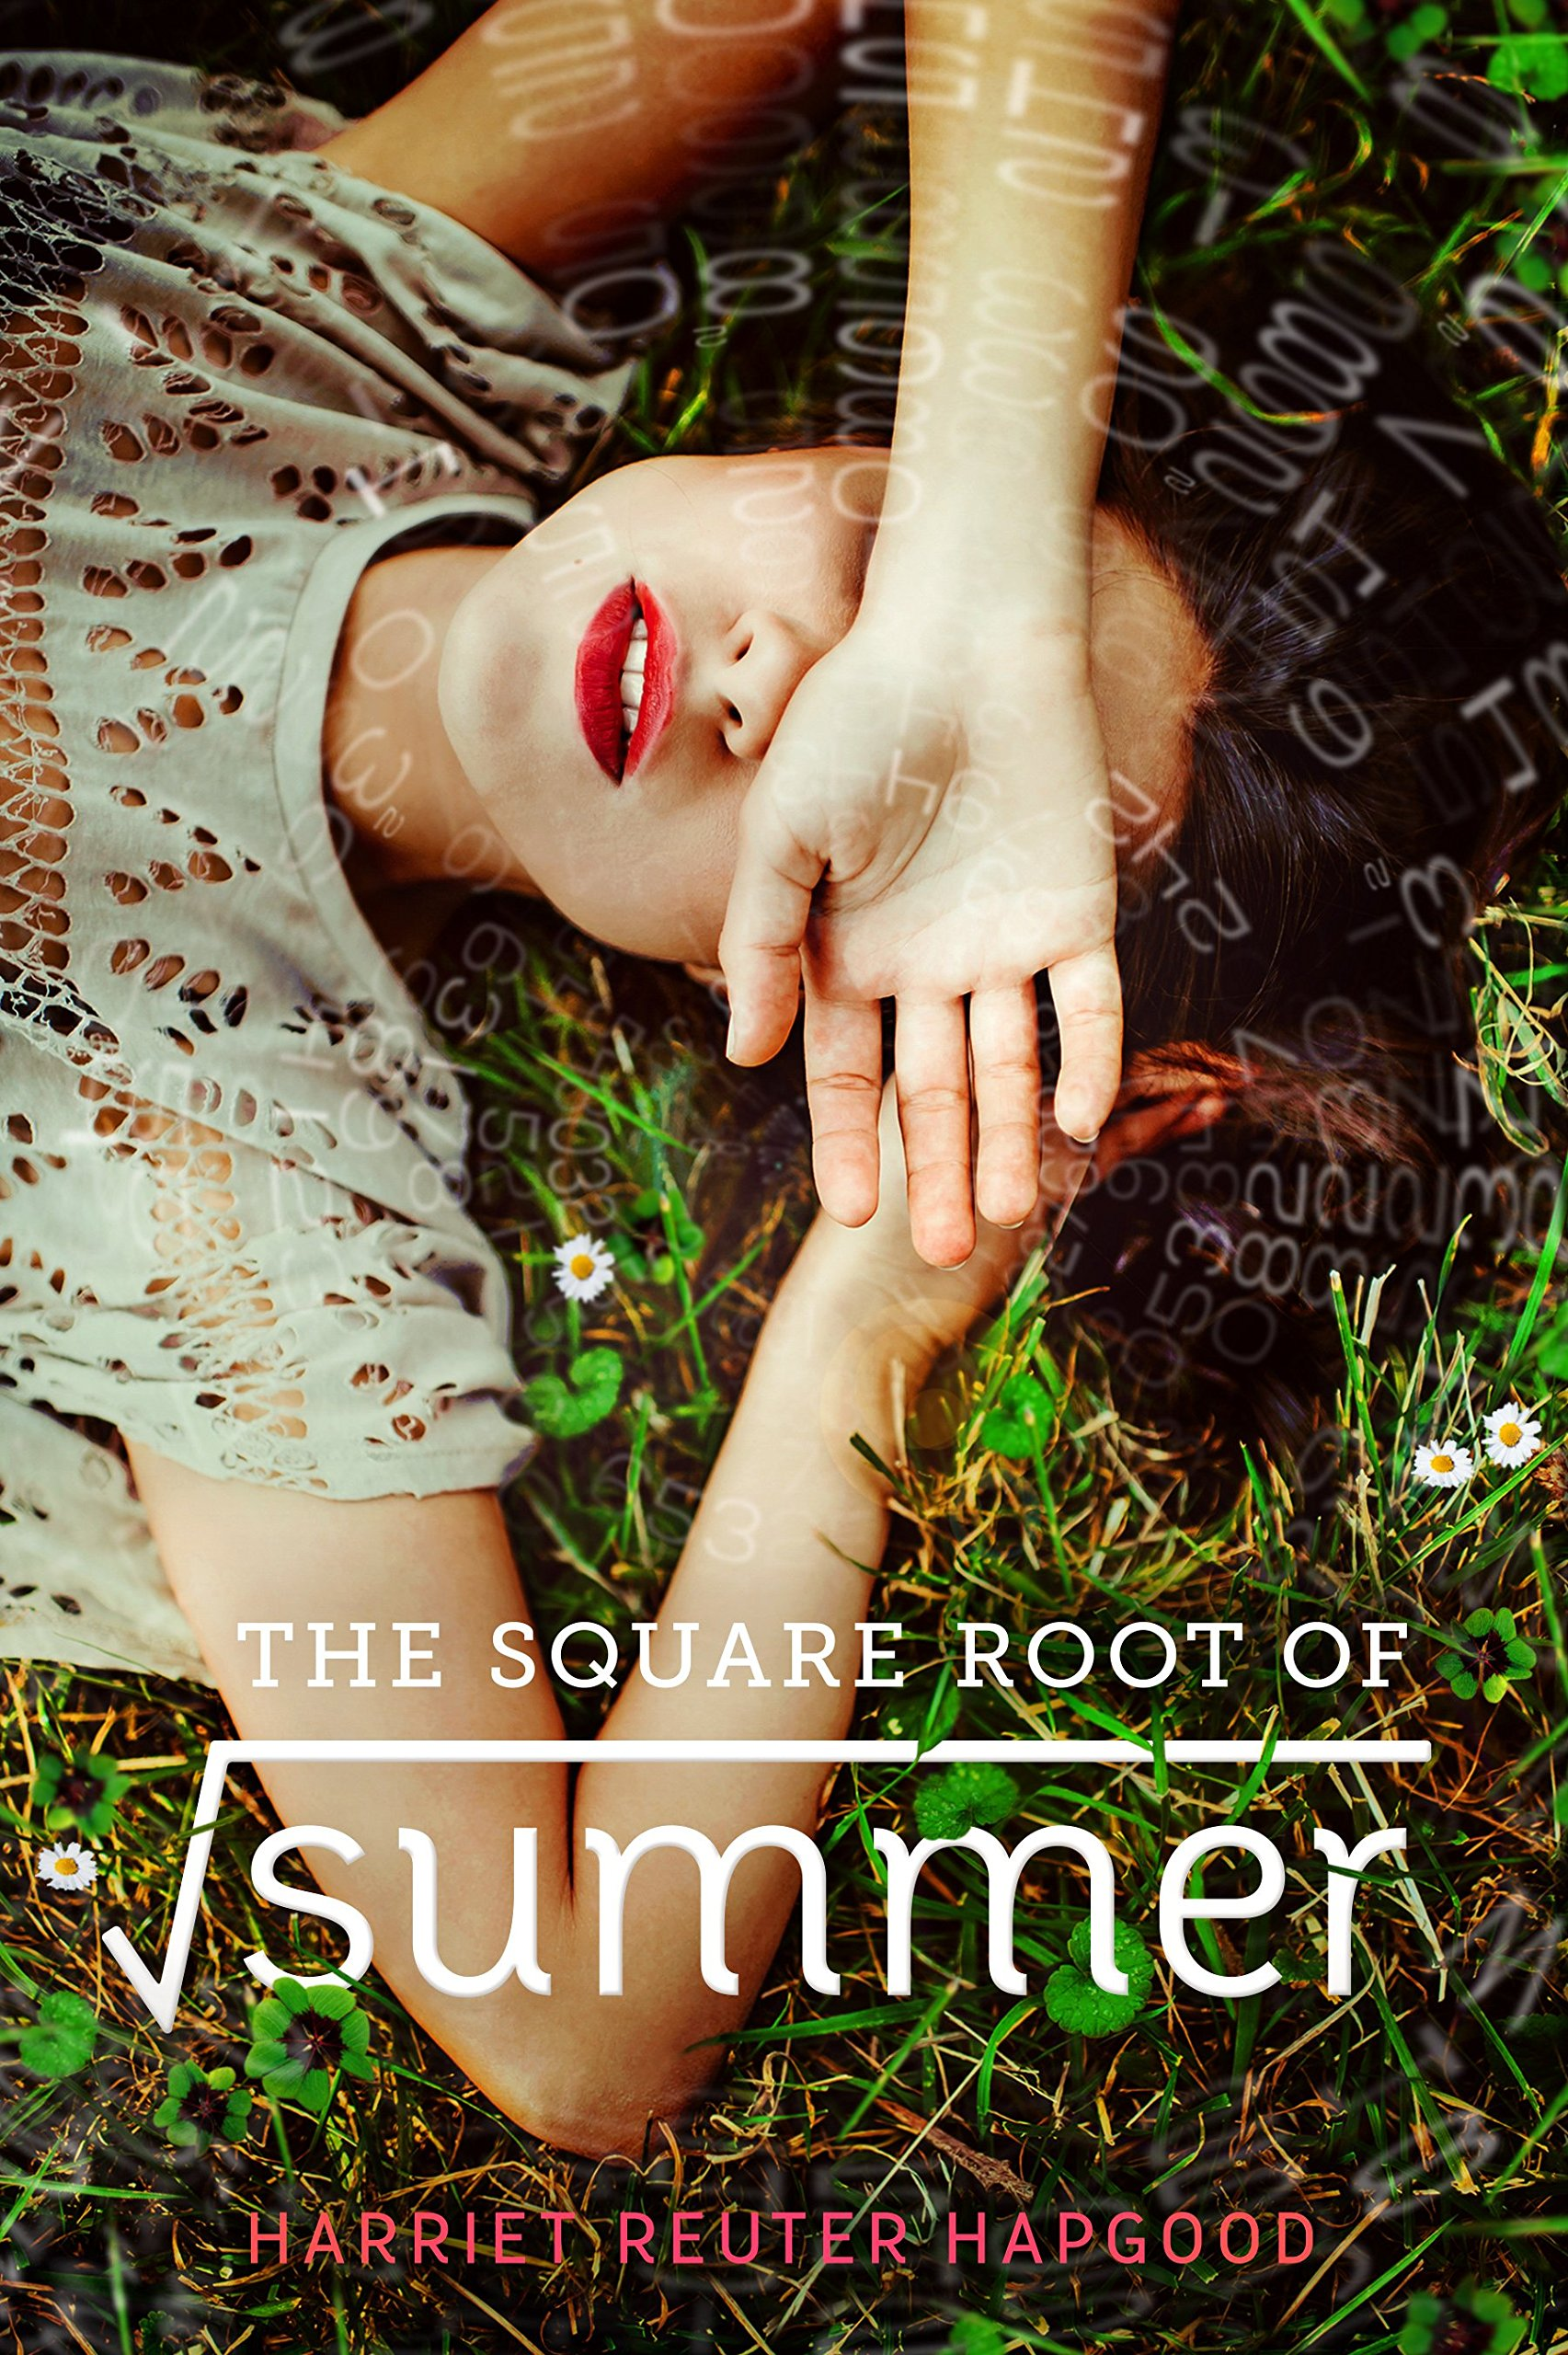 Resultado de imagen de The square root of summer